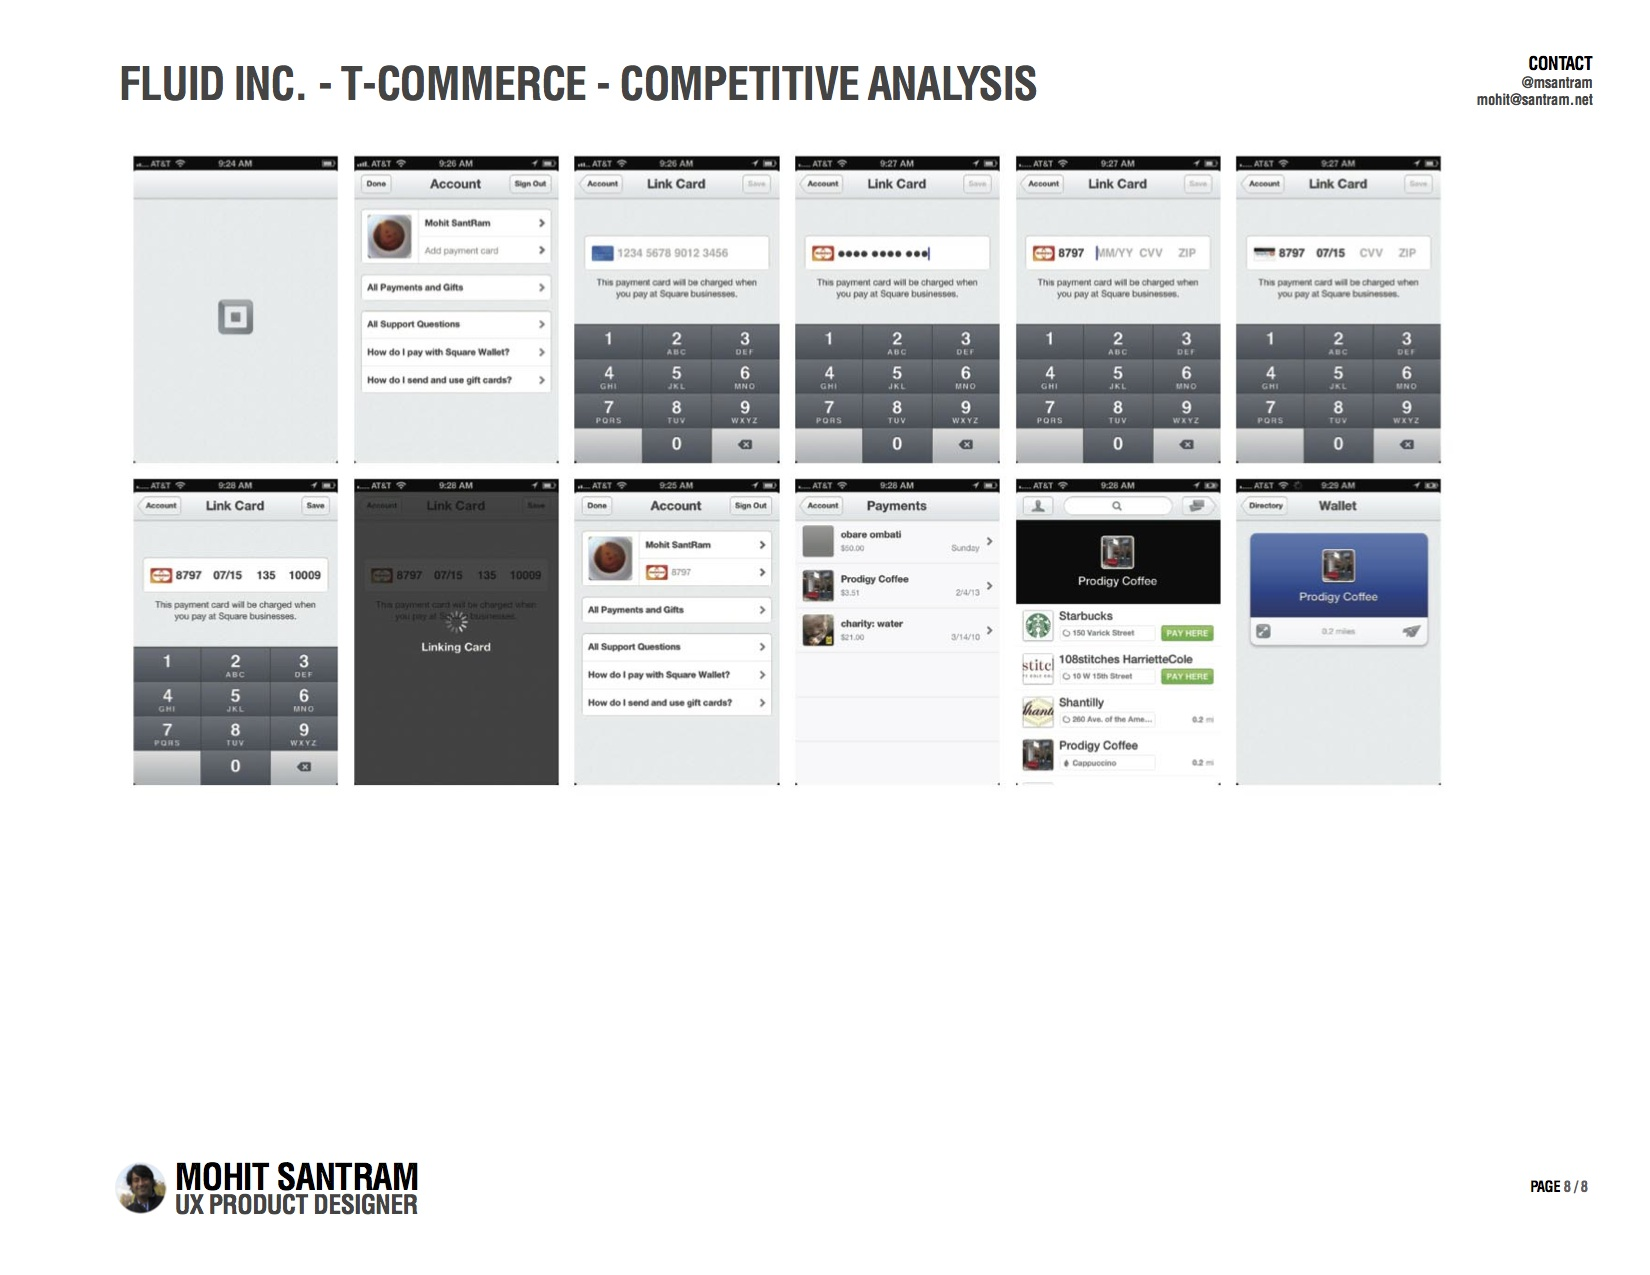 T-Commerce Mobile Competitive Analysis